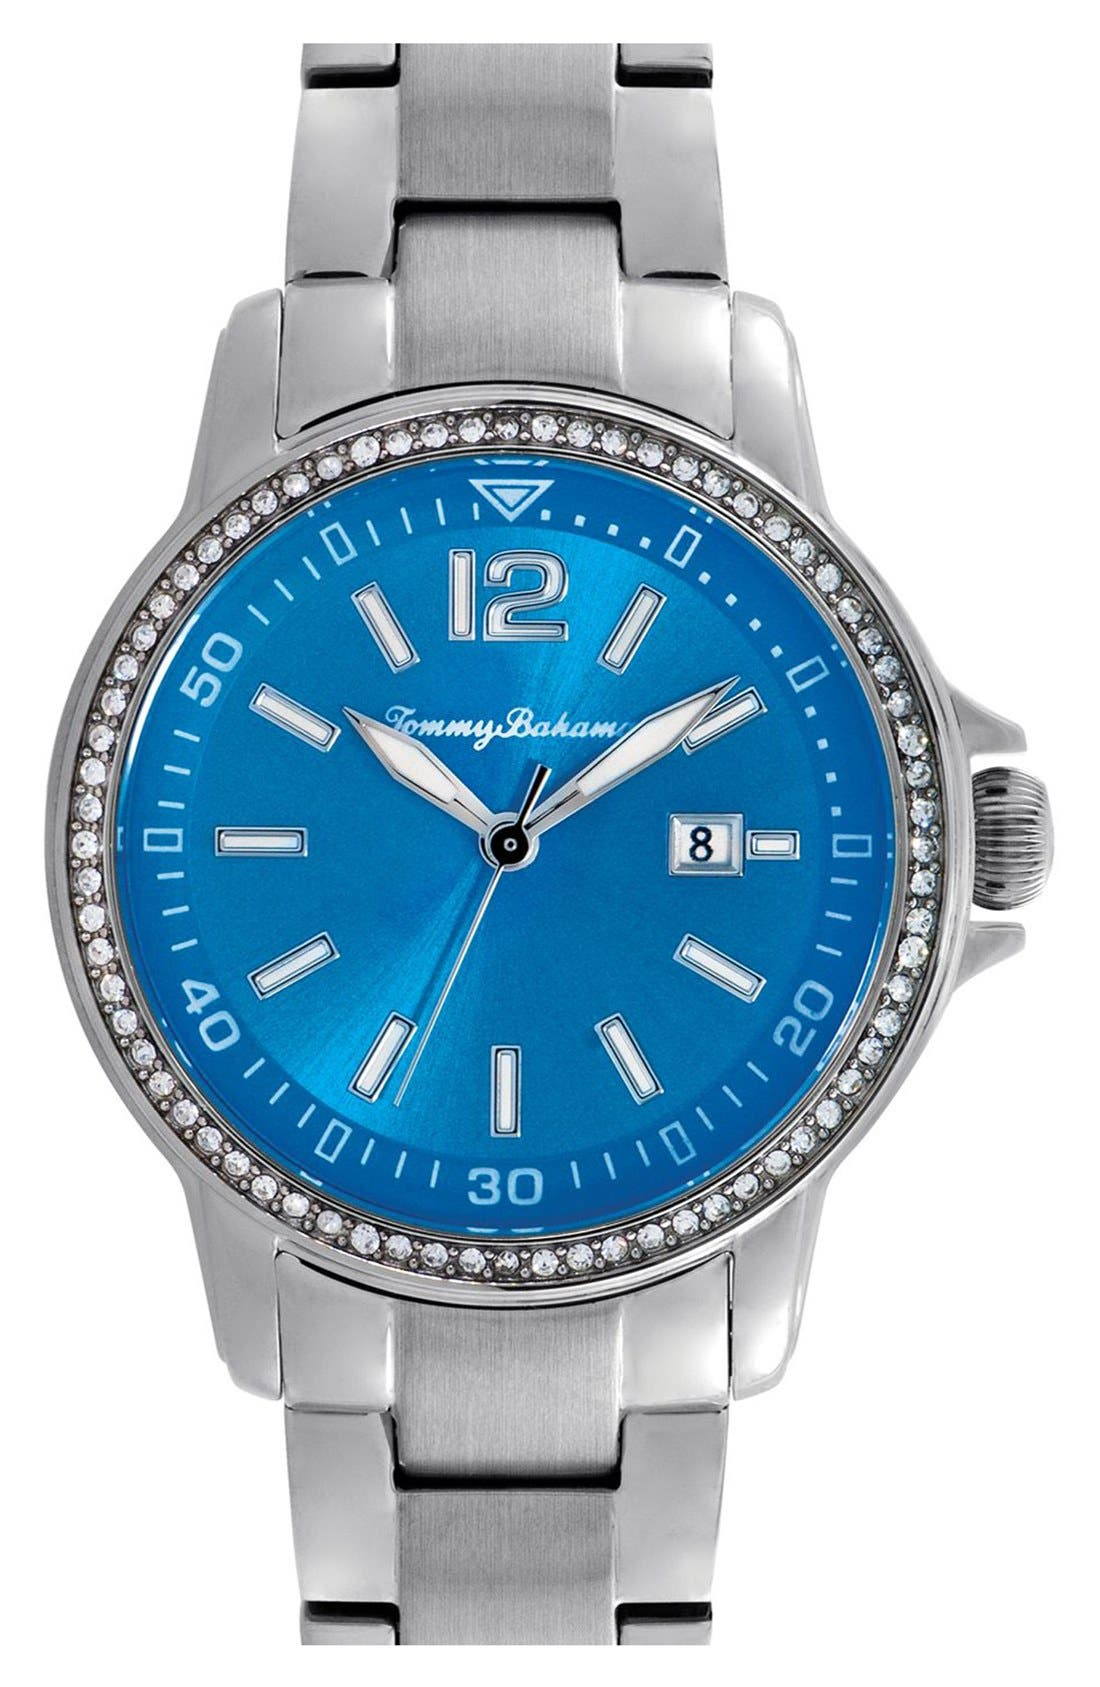 Main Image - Tommy Bahama 'Island Breeze' Crystal Bezel Bracelet Watch, 33mm